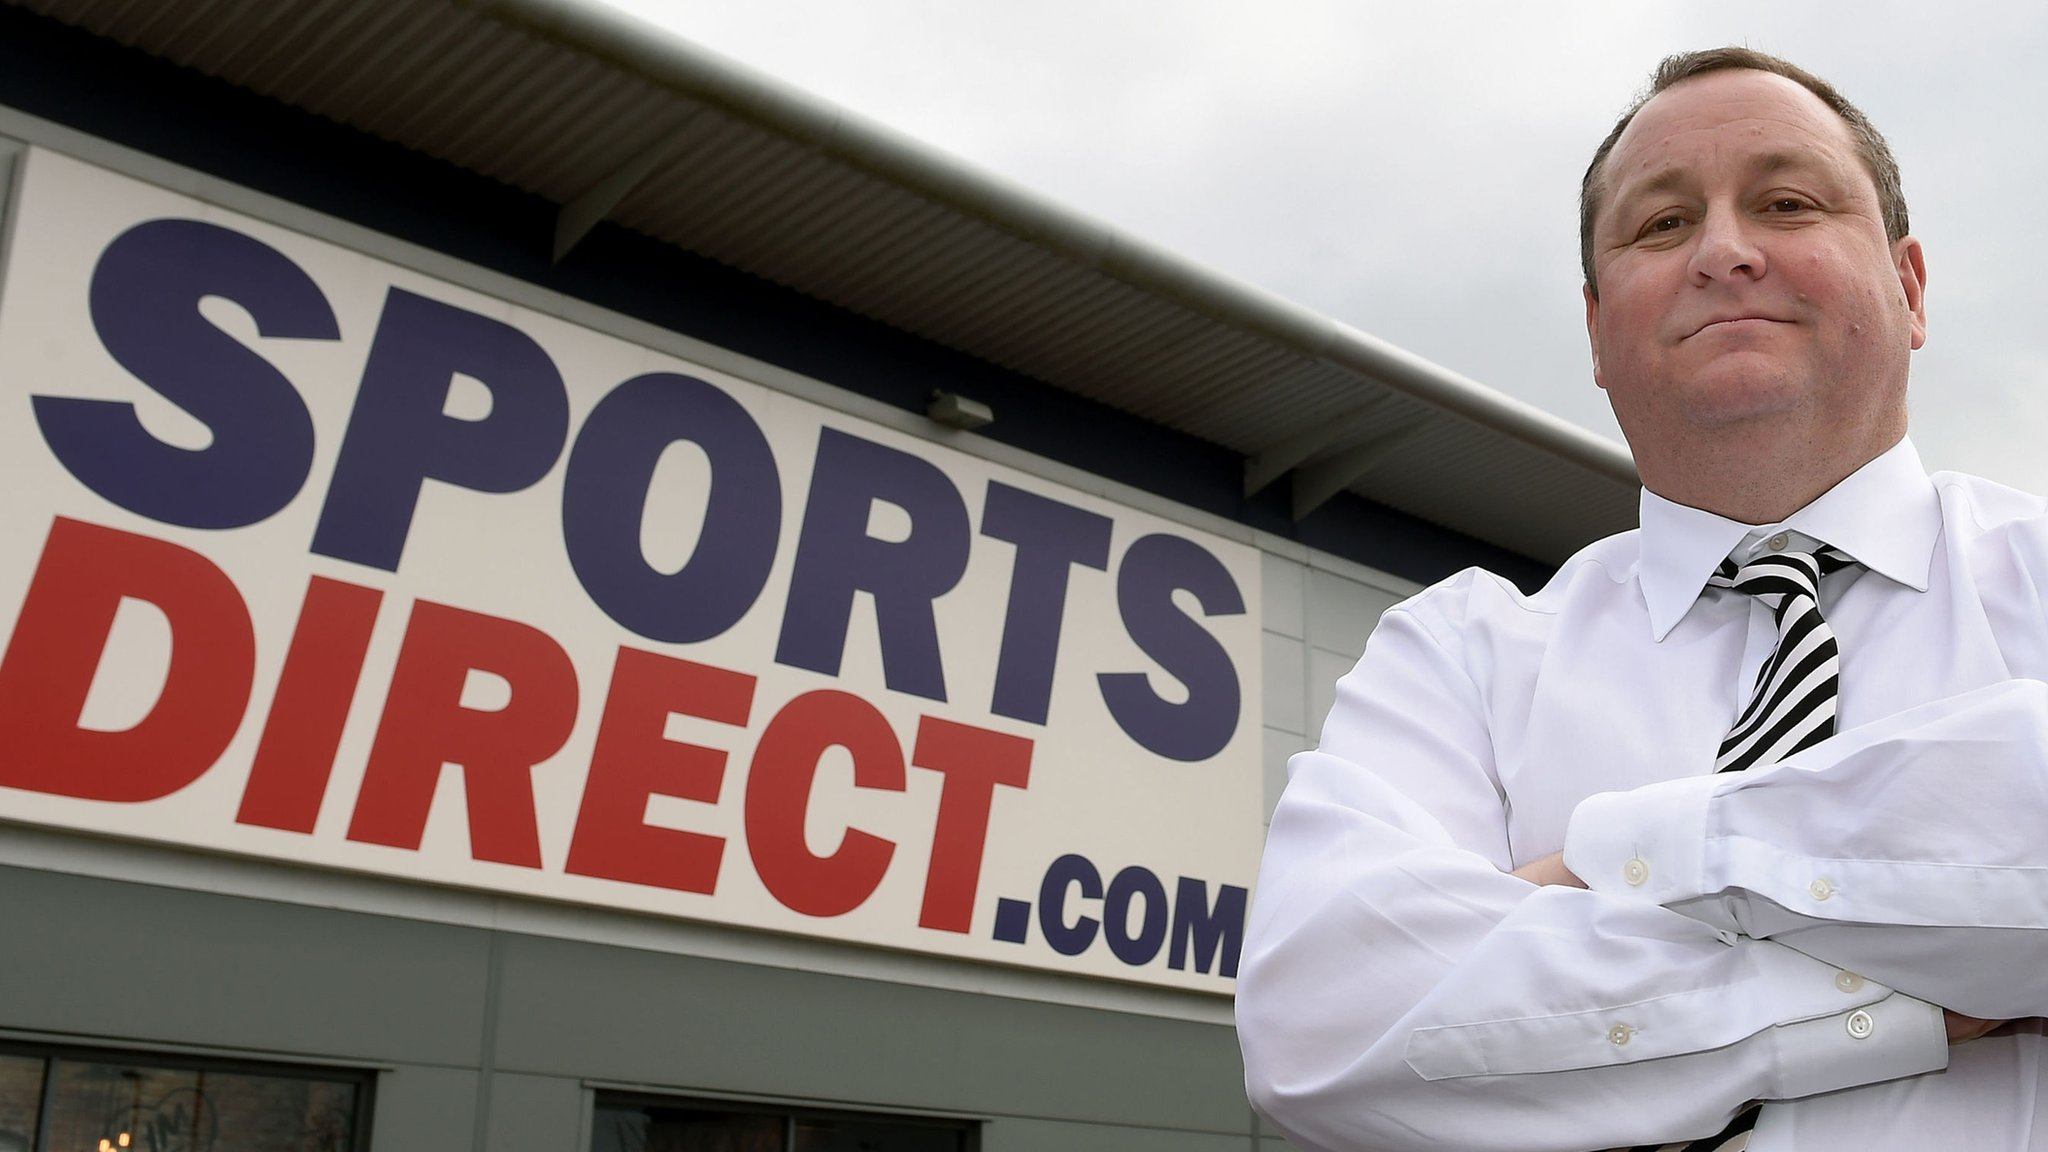 Newcastle spent £1.3m in a year at Ashley's Sports Direct